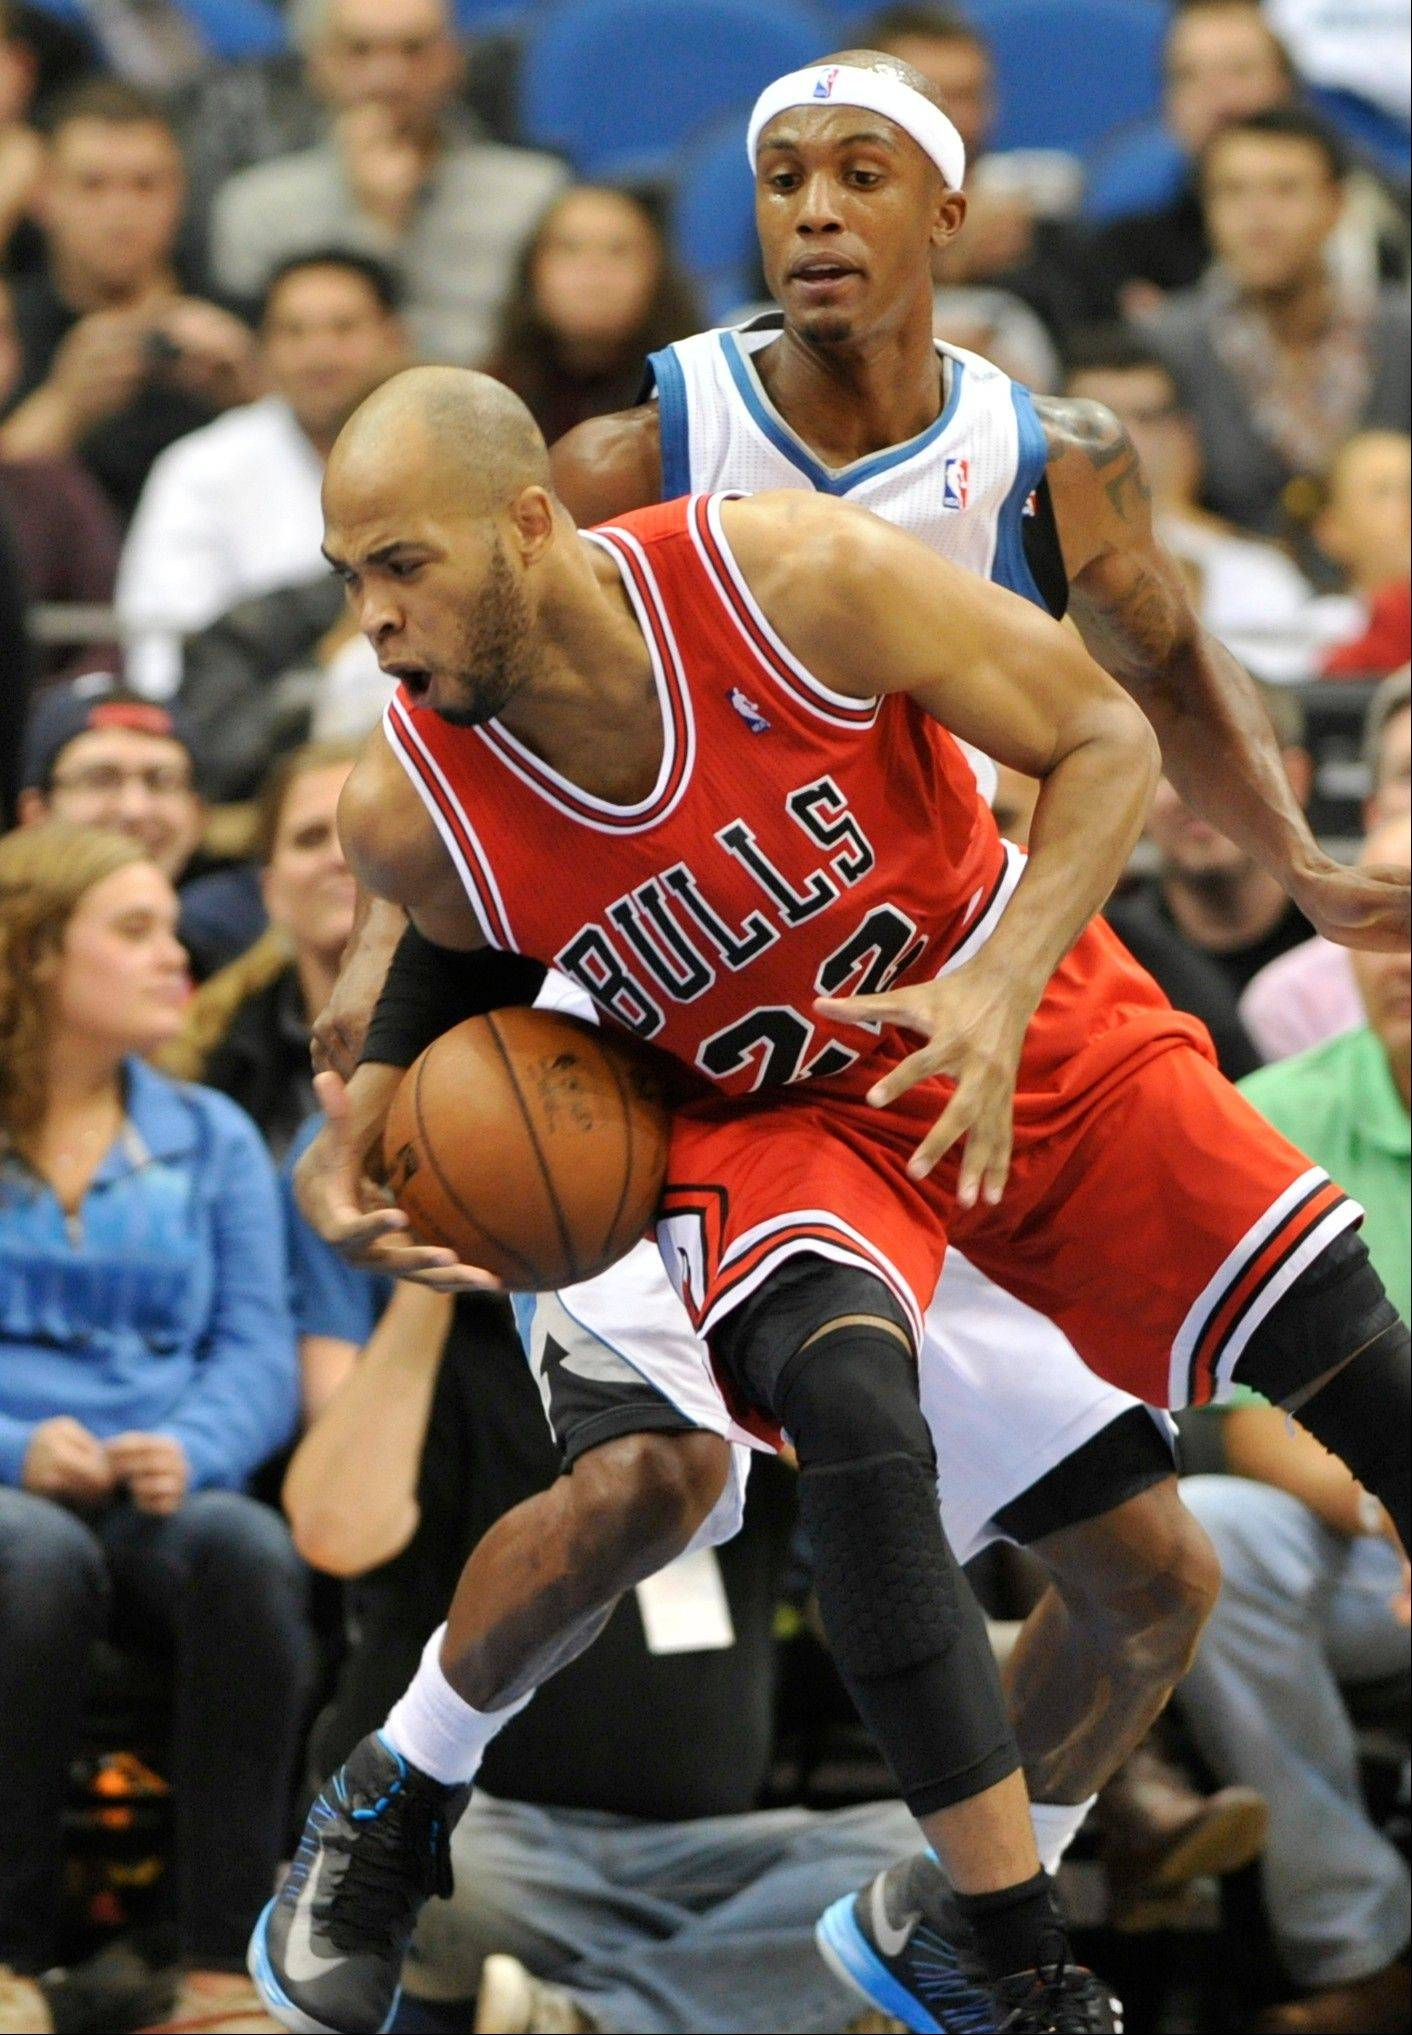 What does Taj Gibson's deal mean for future of Bulls?